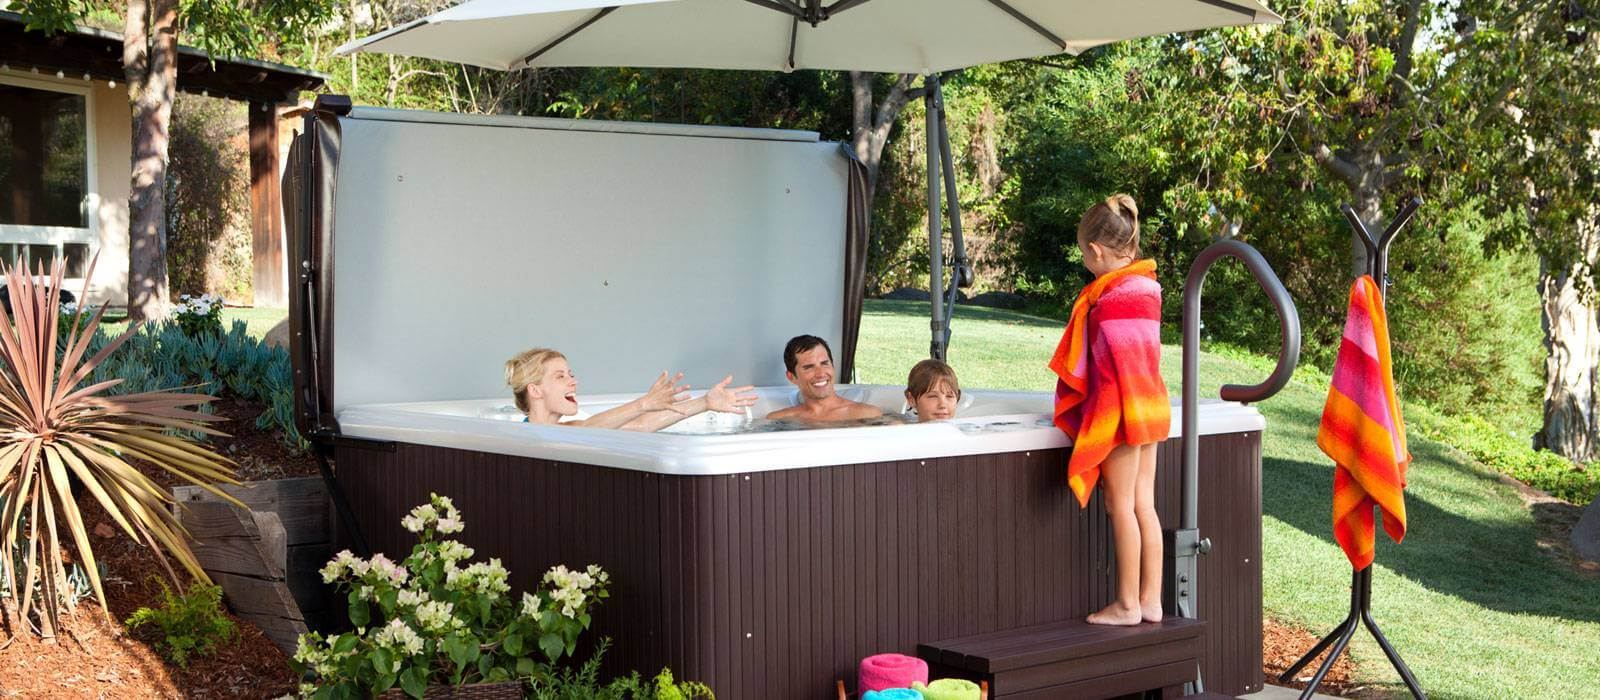 Whirlpool Hotspring gallery spas of redding